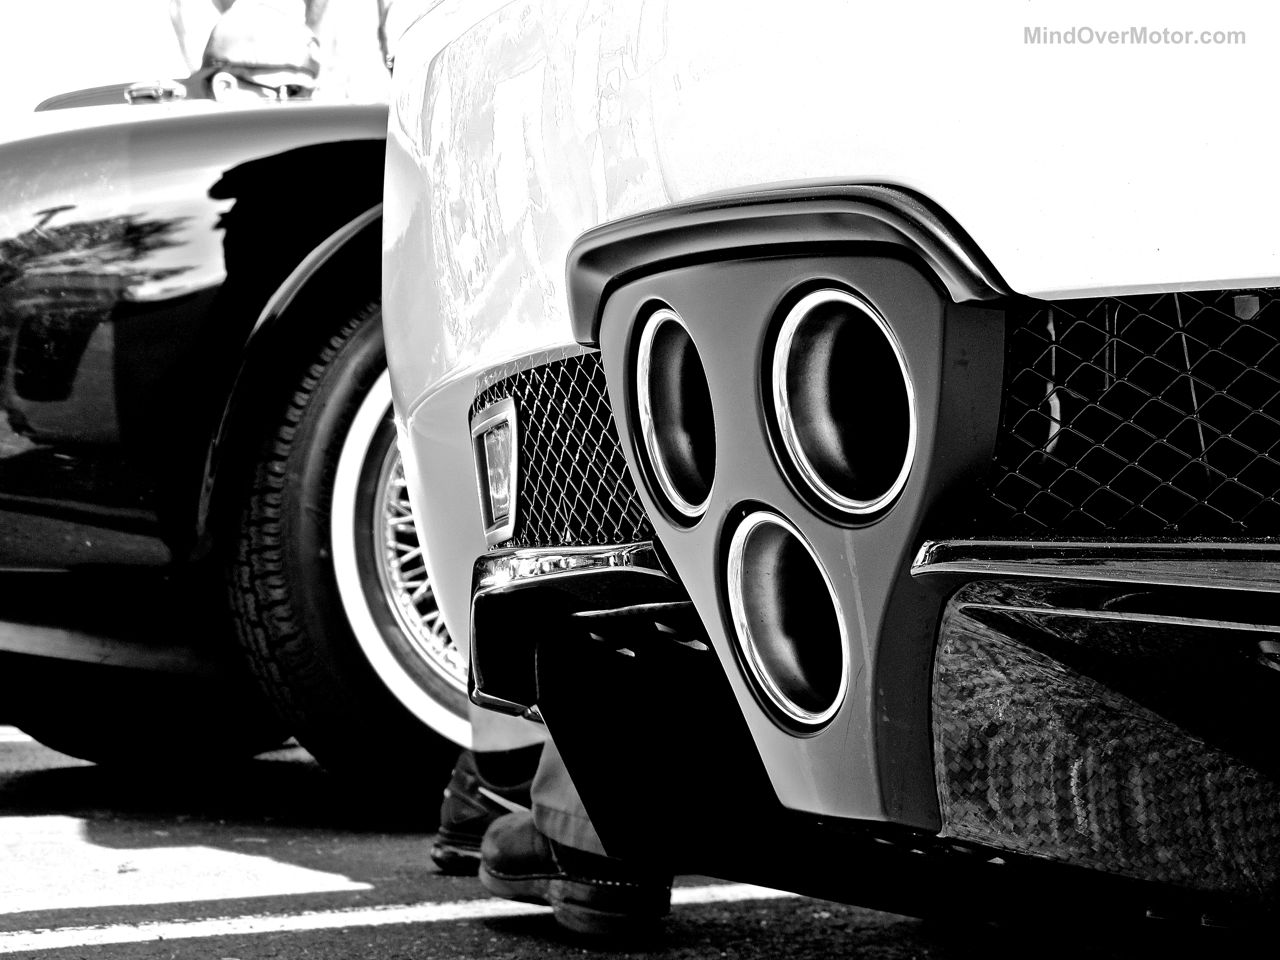 New Hope 2 Lexus LFA Exhaust